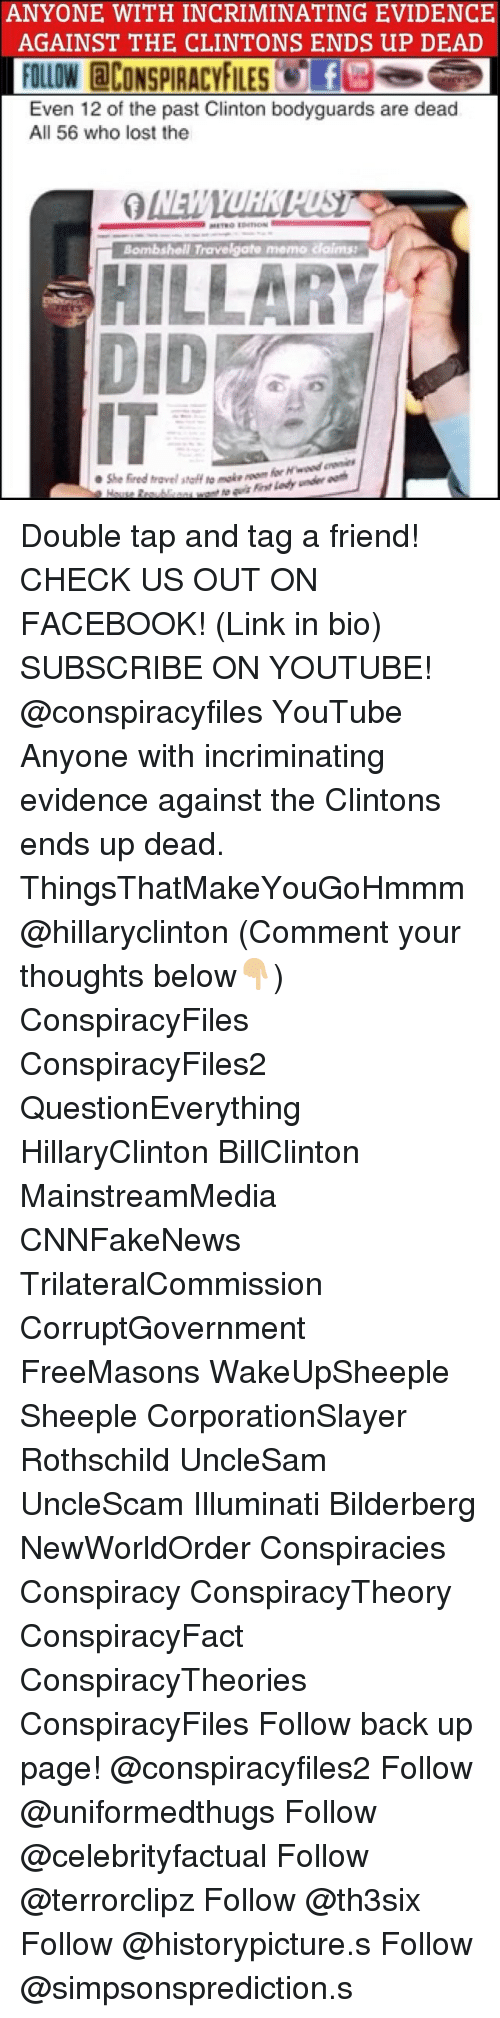 """rothschild: ANYONE WITH INCRIMINATING EVIDENCE  AGAINST THE CLINTONS ENDS UP DEAD  FOLLOW CONSPIRACYFILESf  Even 12 of the past Clinton bodyguards are dead  All 56 who lost the  Bombshell Travelgate memo claims  HILLARY  ●She fired travel staff """"o make  dy u Double tap and tag a friend! CHECK US OUT ON FACEBOOK! (Link in bio) SUBSCRIBE ON YOUTUBE! @conspiracyfiles YouTube Anyone with incriminating evidence against the Clintons ends up dead. ThingsThatMakeYouGoHmmm @hillaryclinton (Comment your thoughts below👇🏼) ConspiracyFiles ConspiracyFiles2 QuestionEverything HillaryClinton BillClinton MainstreamMedia CNNFakeNews TrilateralCommission CorruptGovernment FreeMasons WakeUpSheeple Sheeple CorporationSlayer Rothschild UncleSam UncleScam Illuminati Bilderberg NewWorldOrder Conspiracies Conspiracy ConspiracyTheory ConspiracyFact ConspiracyTheories ConspiracyFiles Follow back up page! @conspiracyfiles2 Follow @uniformedthugs Follow @celebrityfactual Follow @terrorclipz Follow @th3six Follow @historypicture.s Follow @simpsonsprediction.s"""